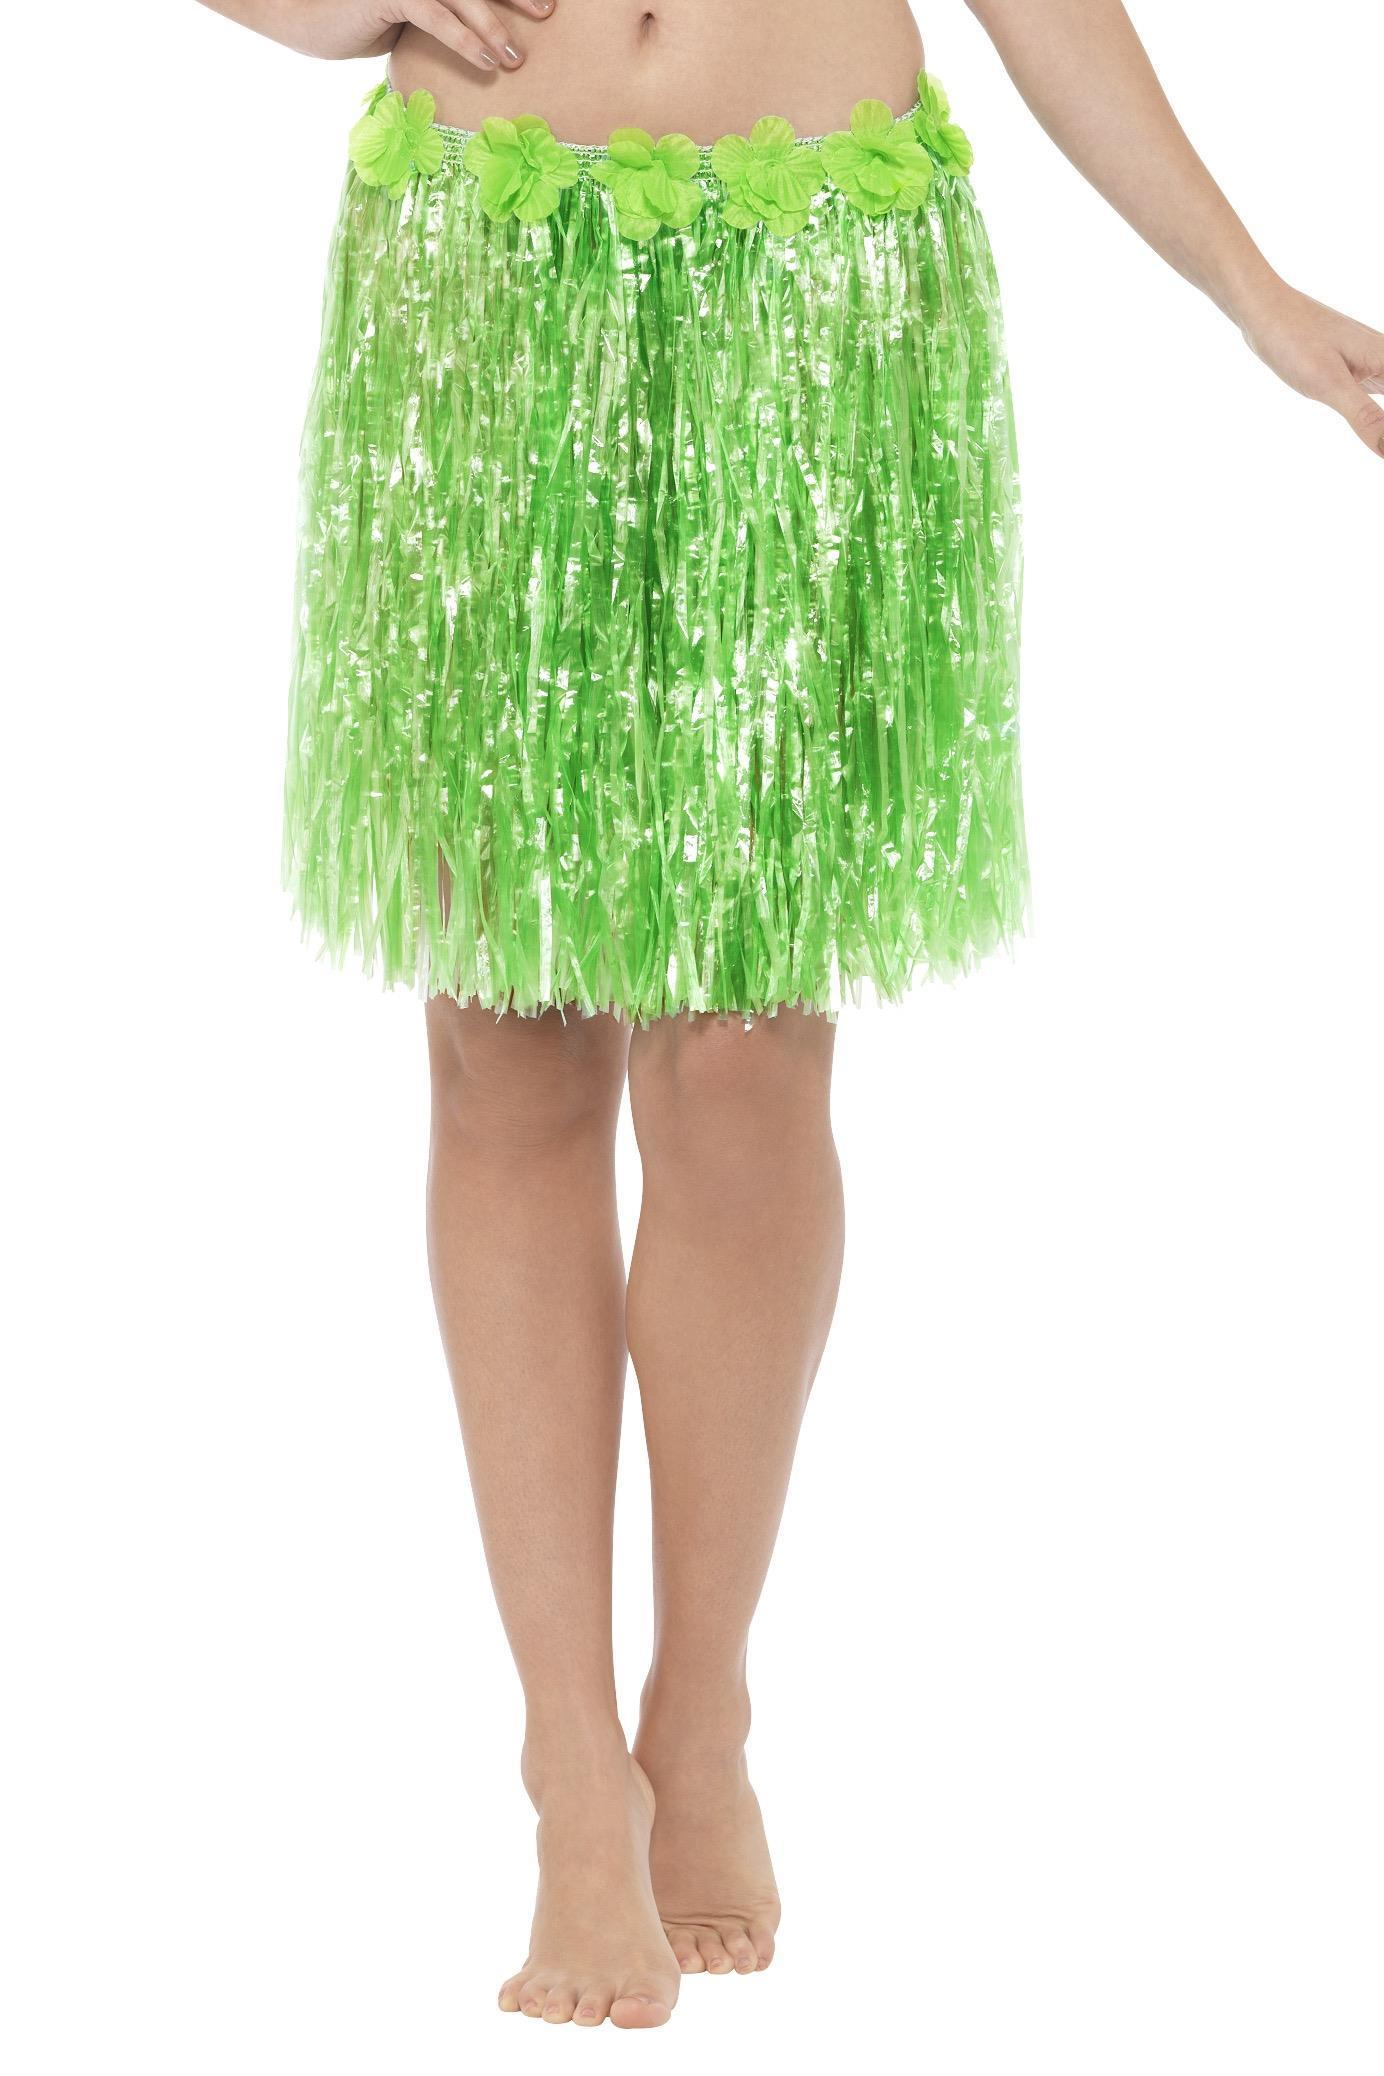 Hawaiian Hula Skirt Neon Green